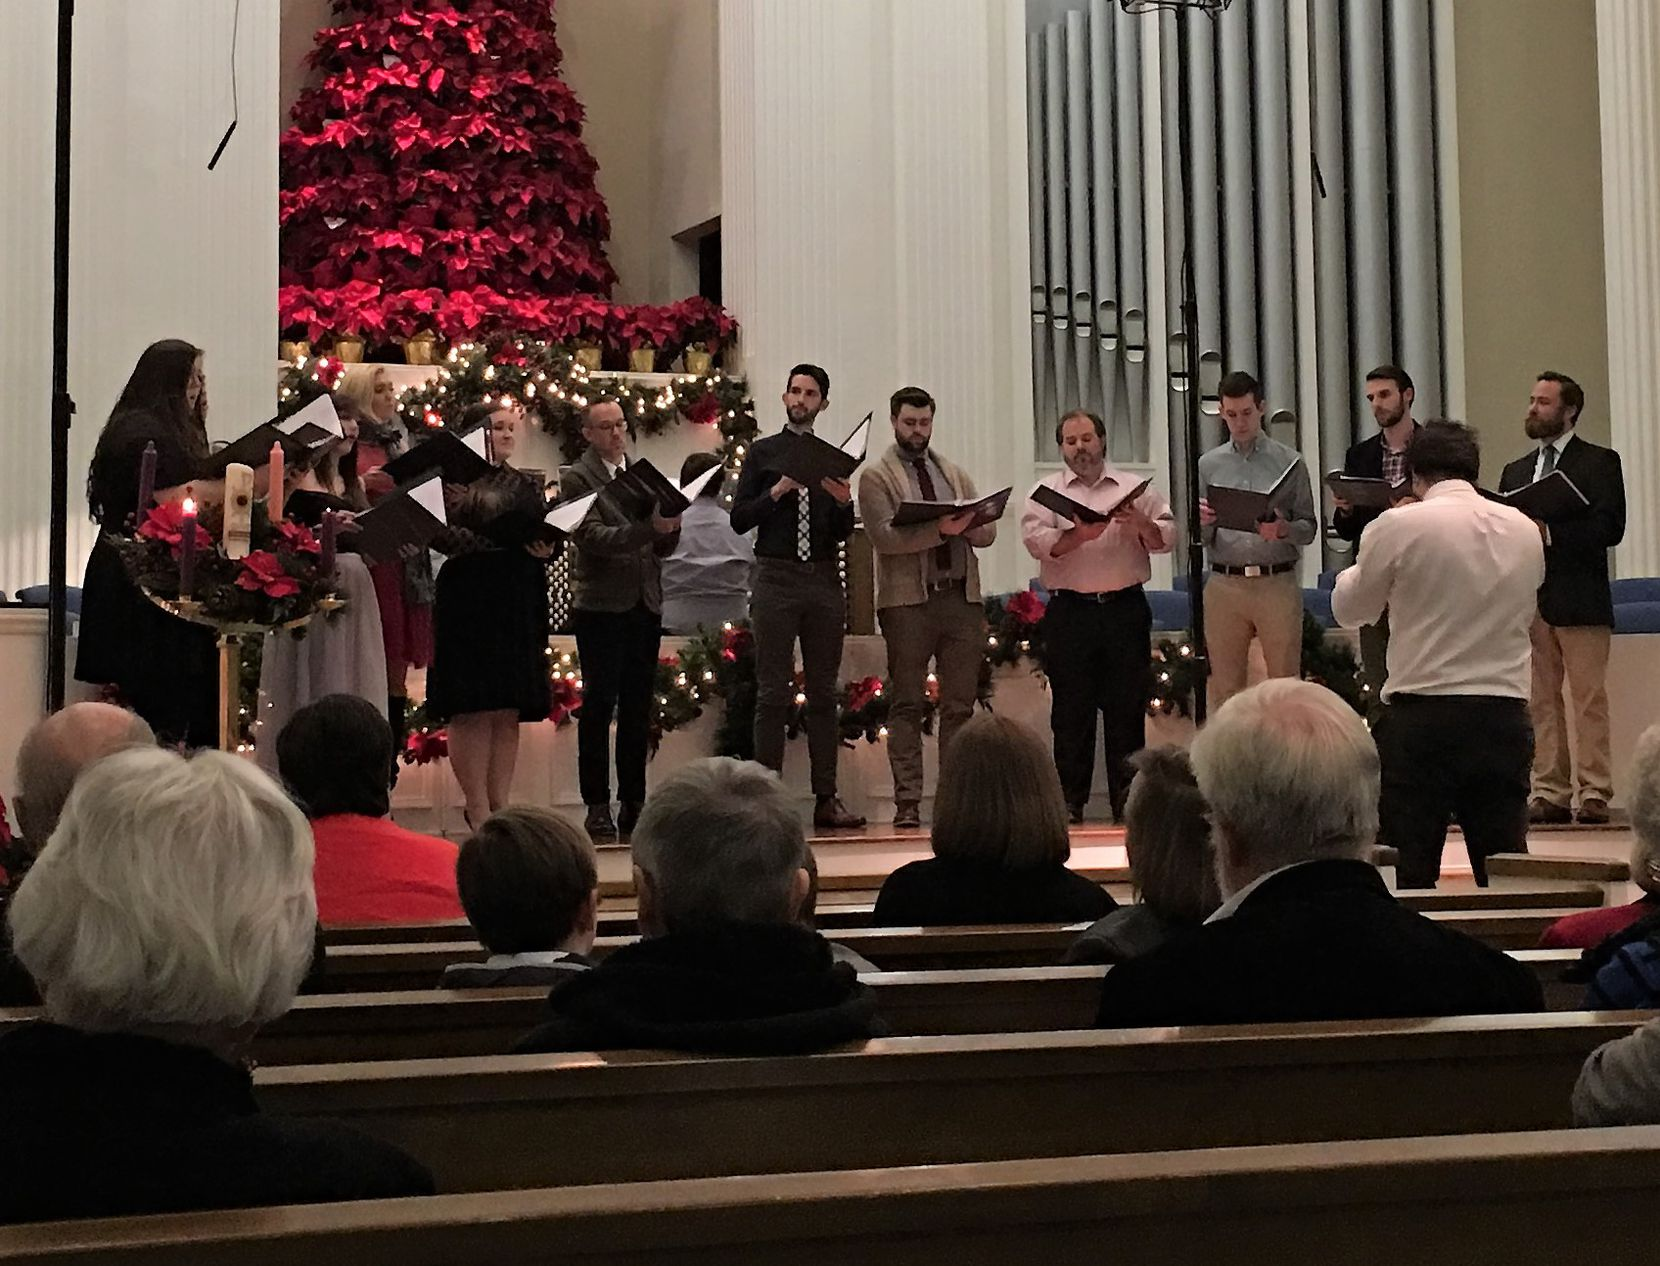 The Verdigris Ensemble, led by artistic director Sam Brukhman, performs a Christmas concert at Royal Lane Baptist Church on Dec. 10, 2017 (Scott Cantrell/Special Contributor)